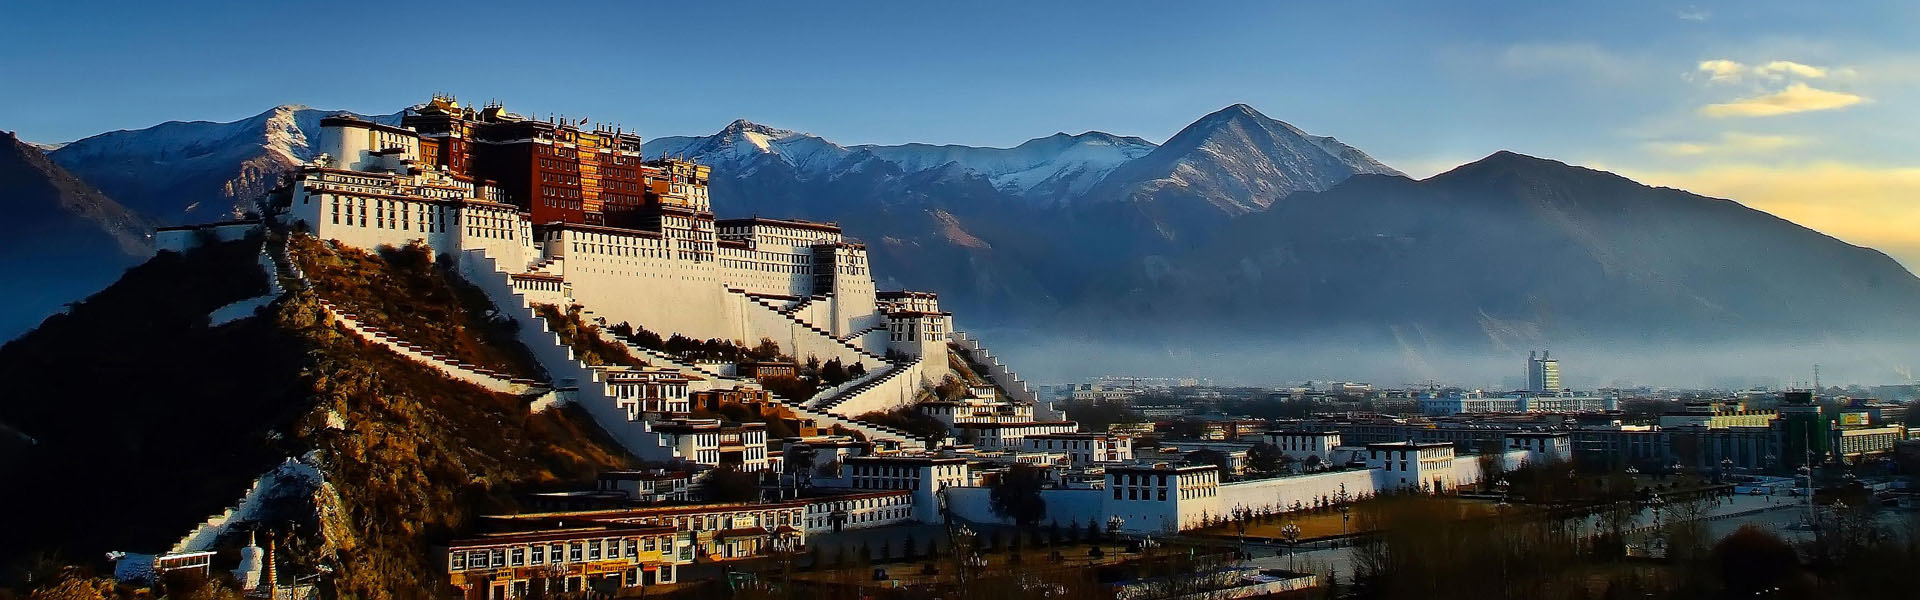 Lhasa, the capital of mysterious Tibet